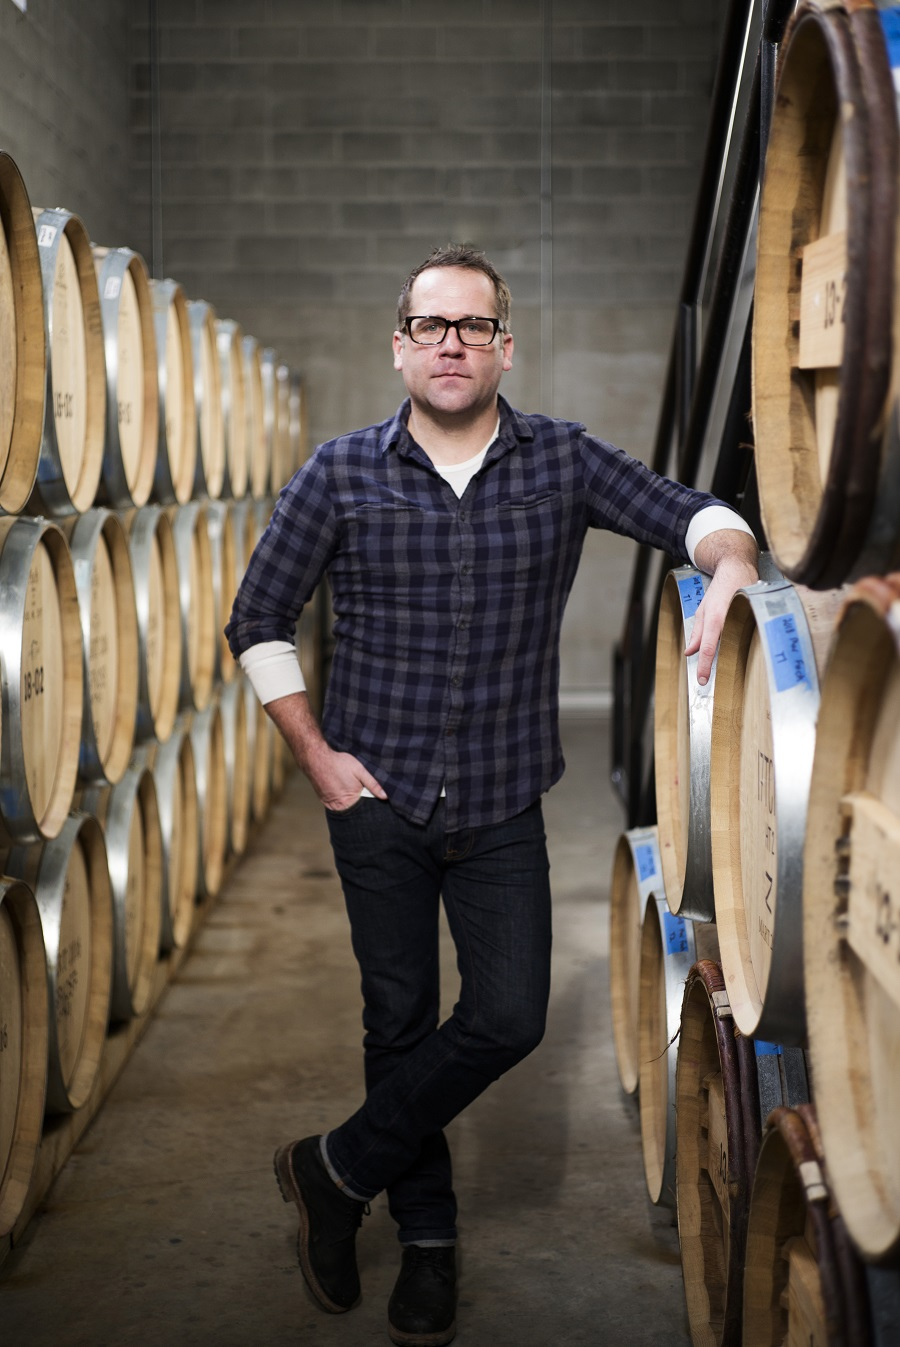 Brent_Rowland_Winemaker_Averill_Creek_Vineyard.jpg